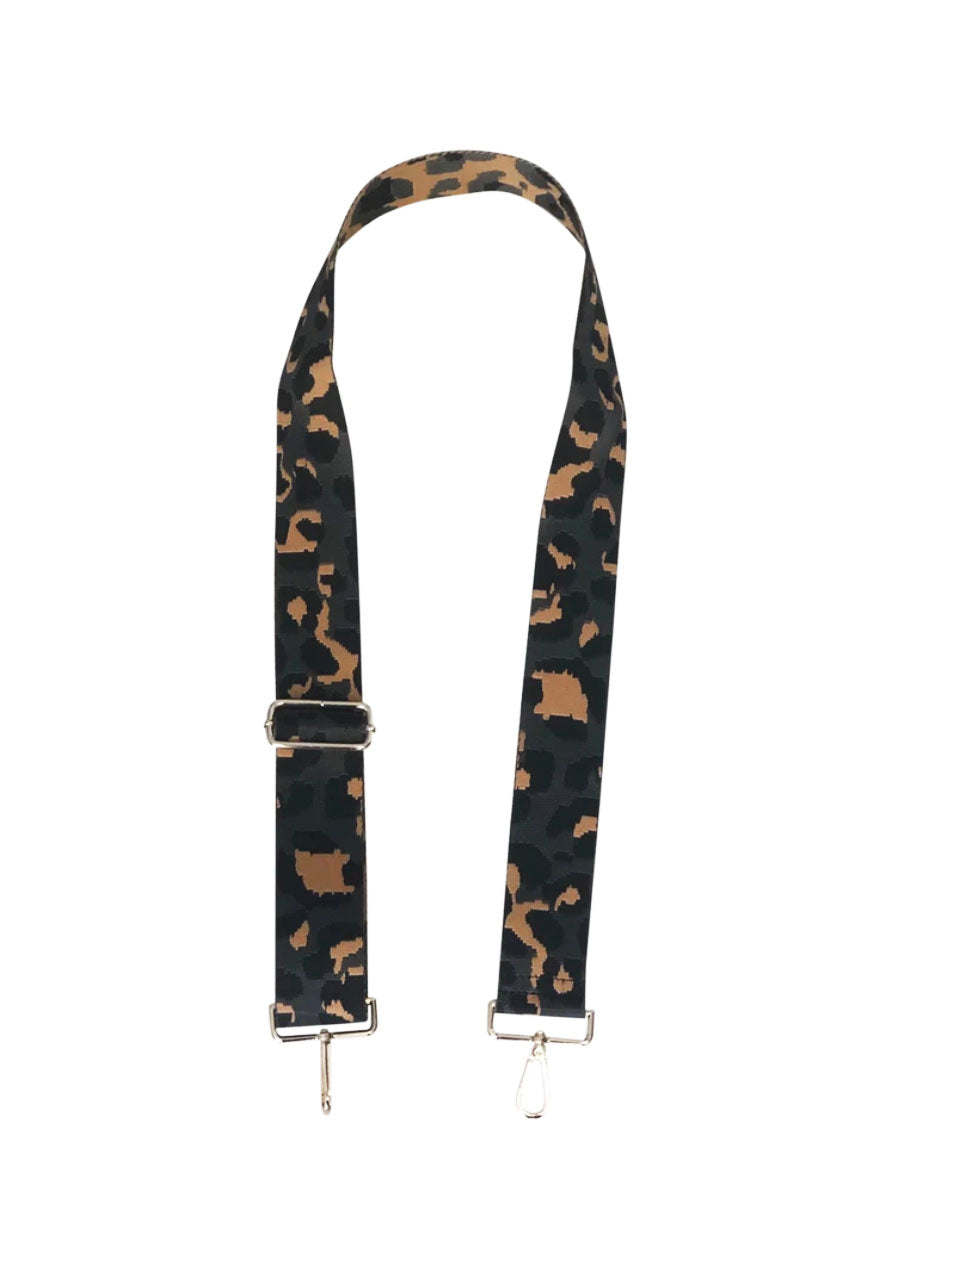 "Ahdorned 2"" Bag Strap in Grey Leopard"